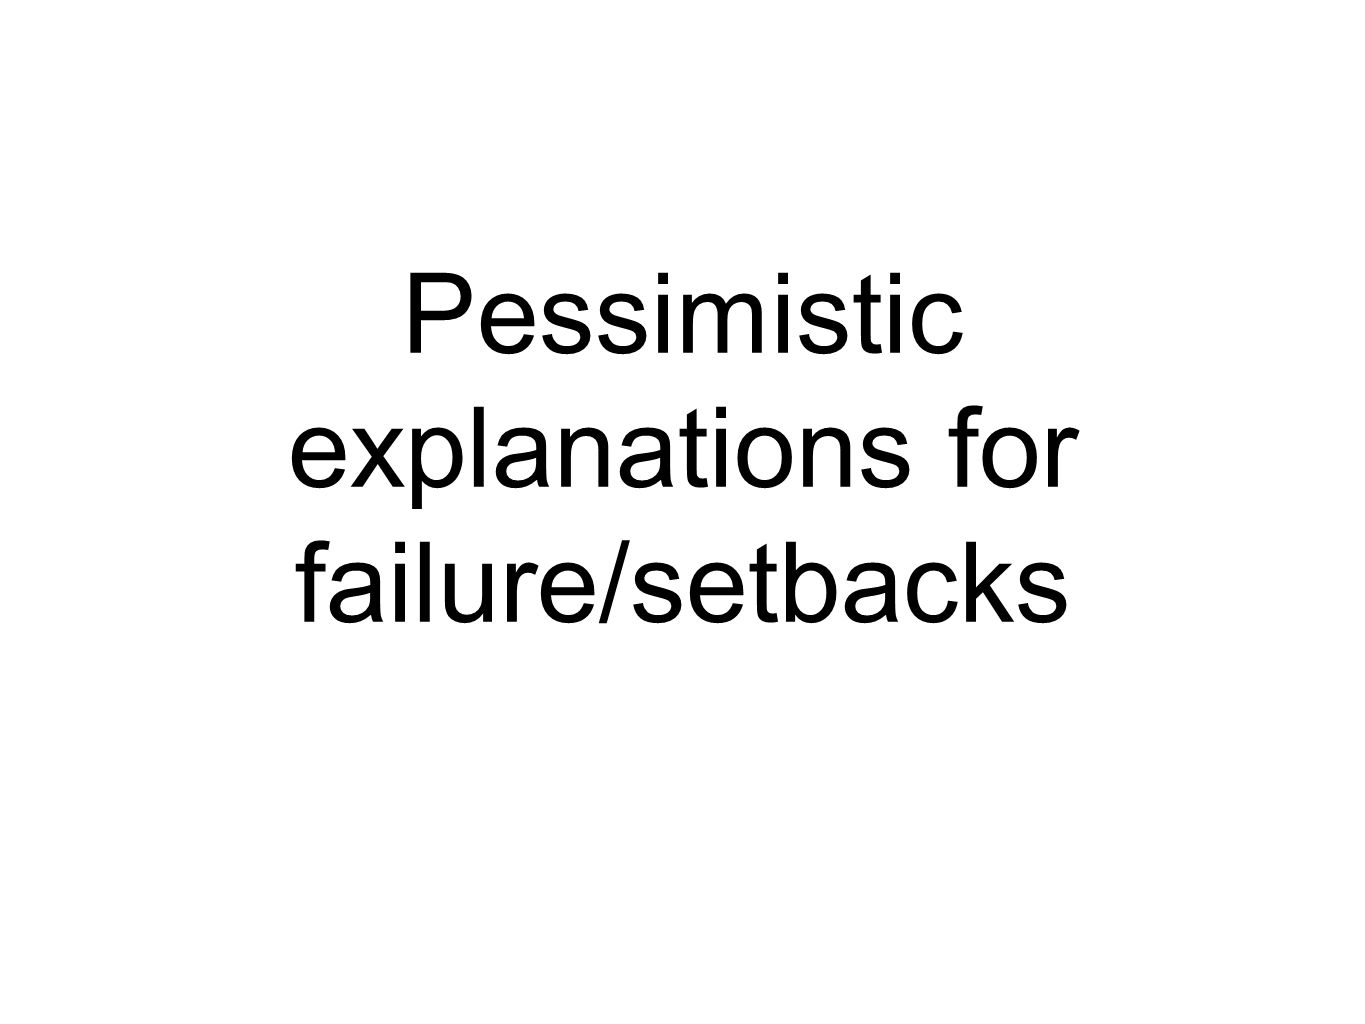 Pessimistic explanations for failure/setbacks